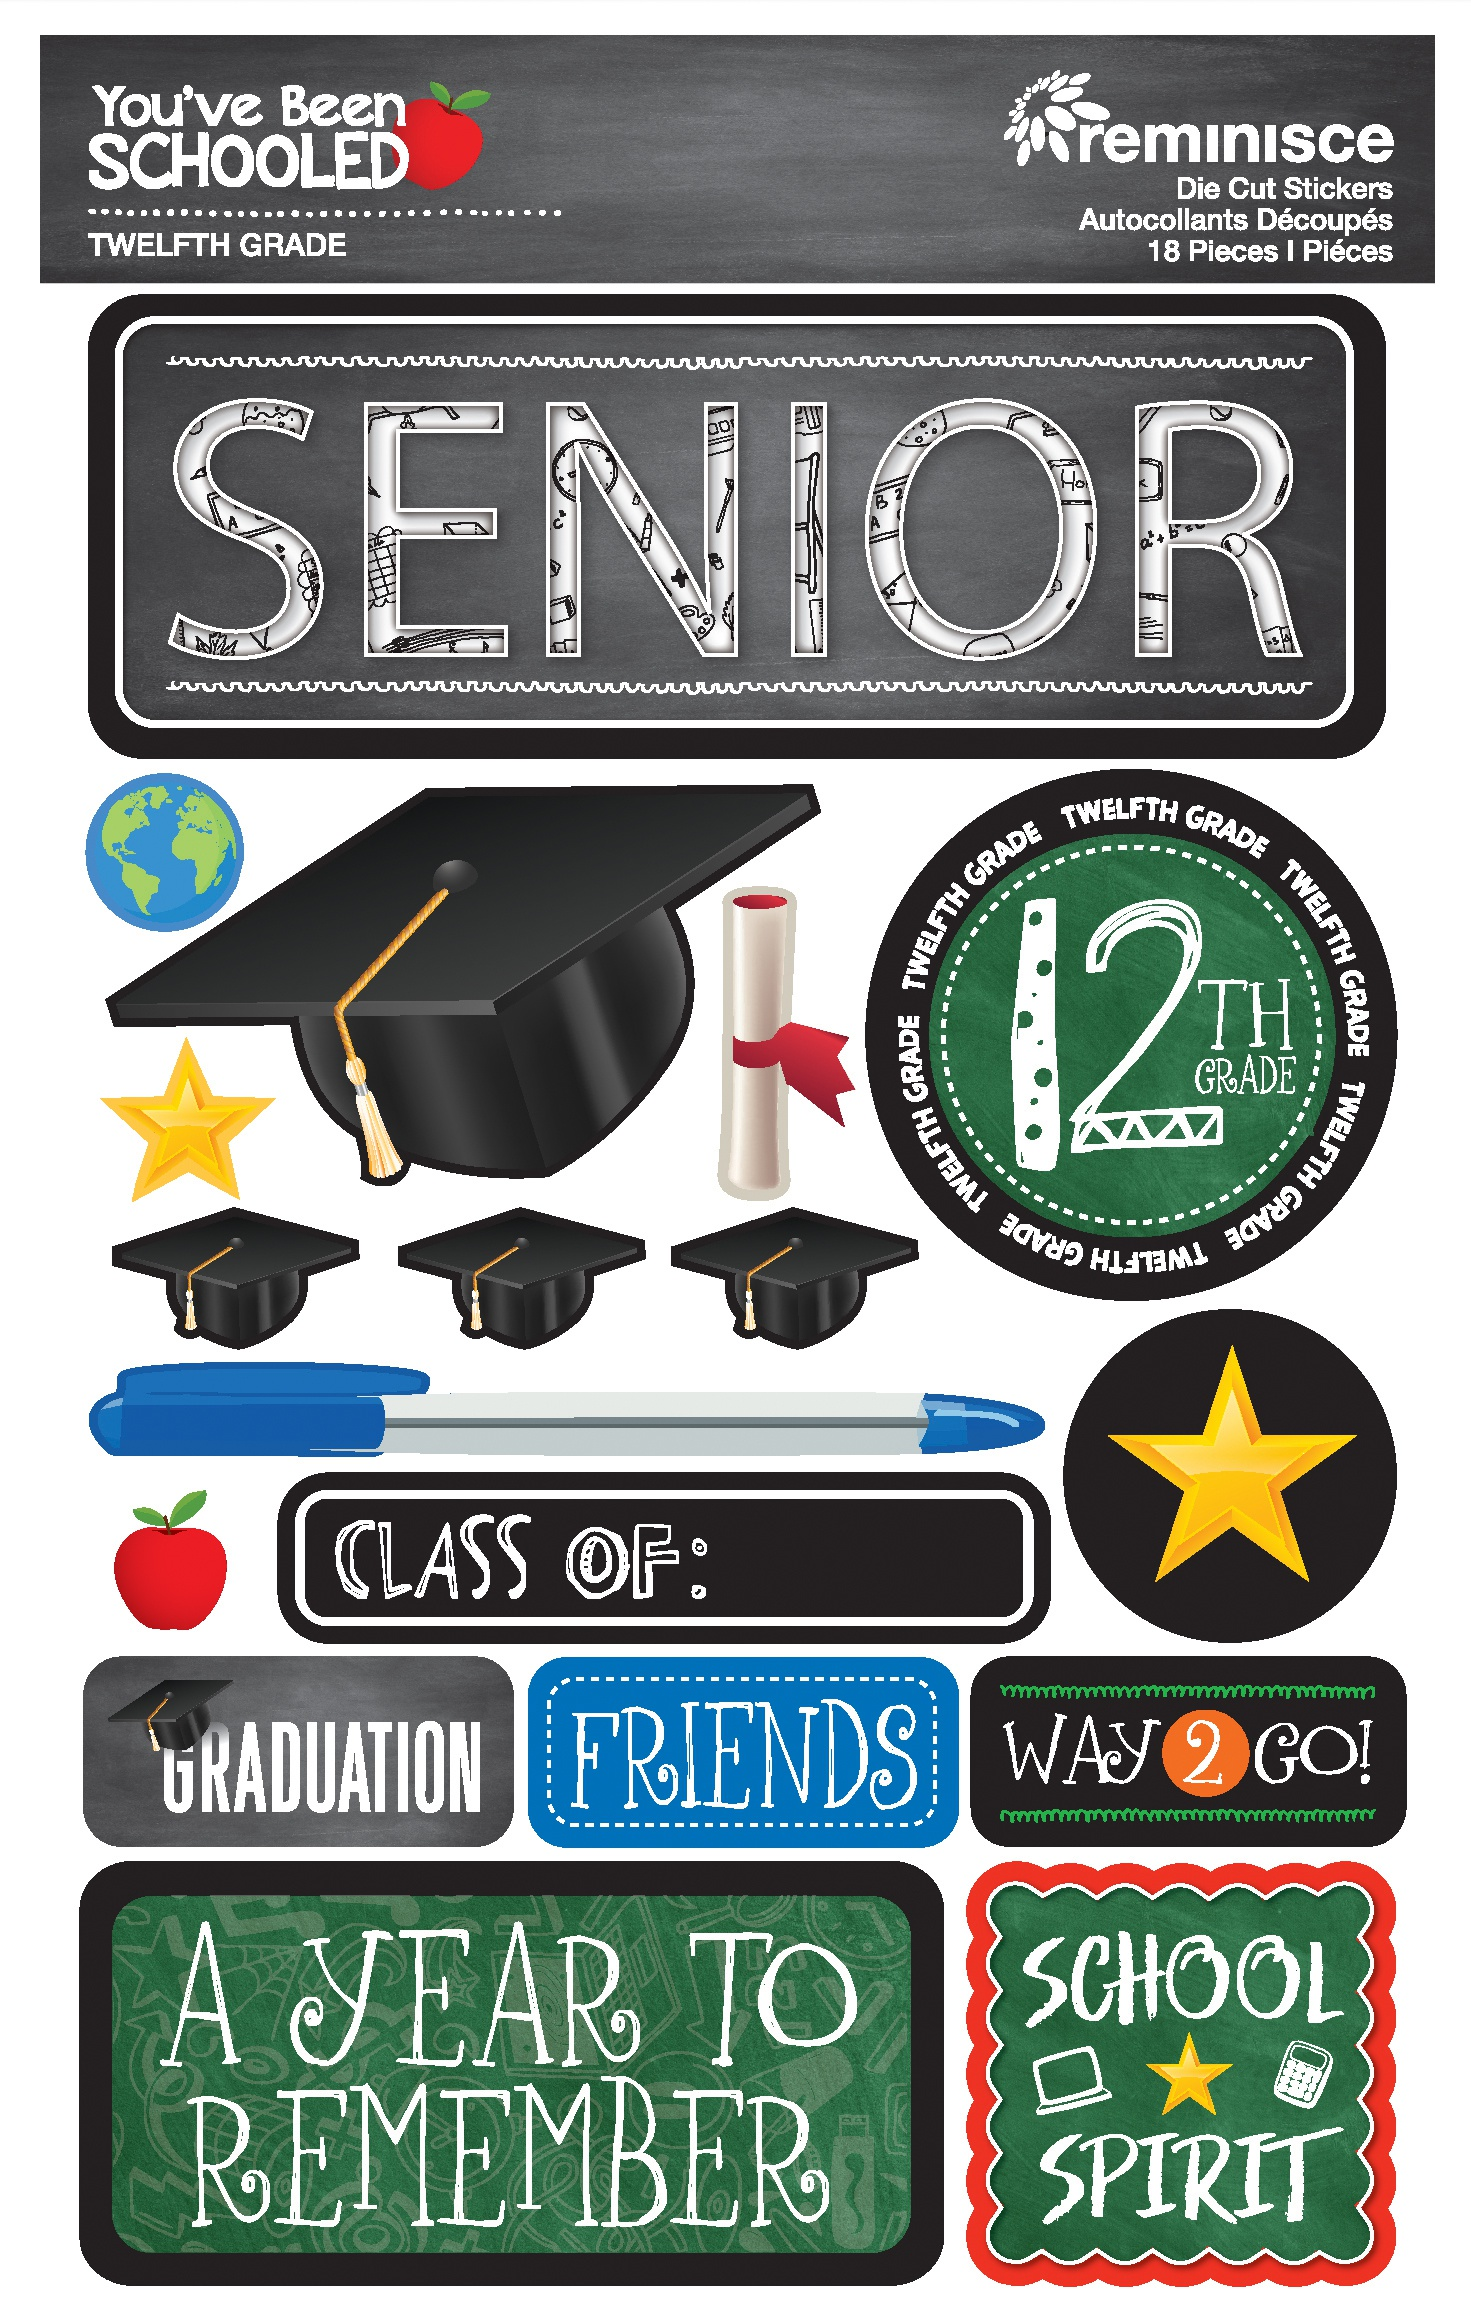 Reminisce You've Been Schooled - 12th Grade / Senior 3D Dimensional Stickers